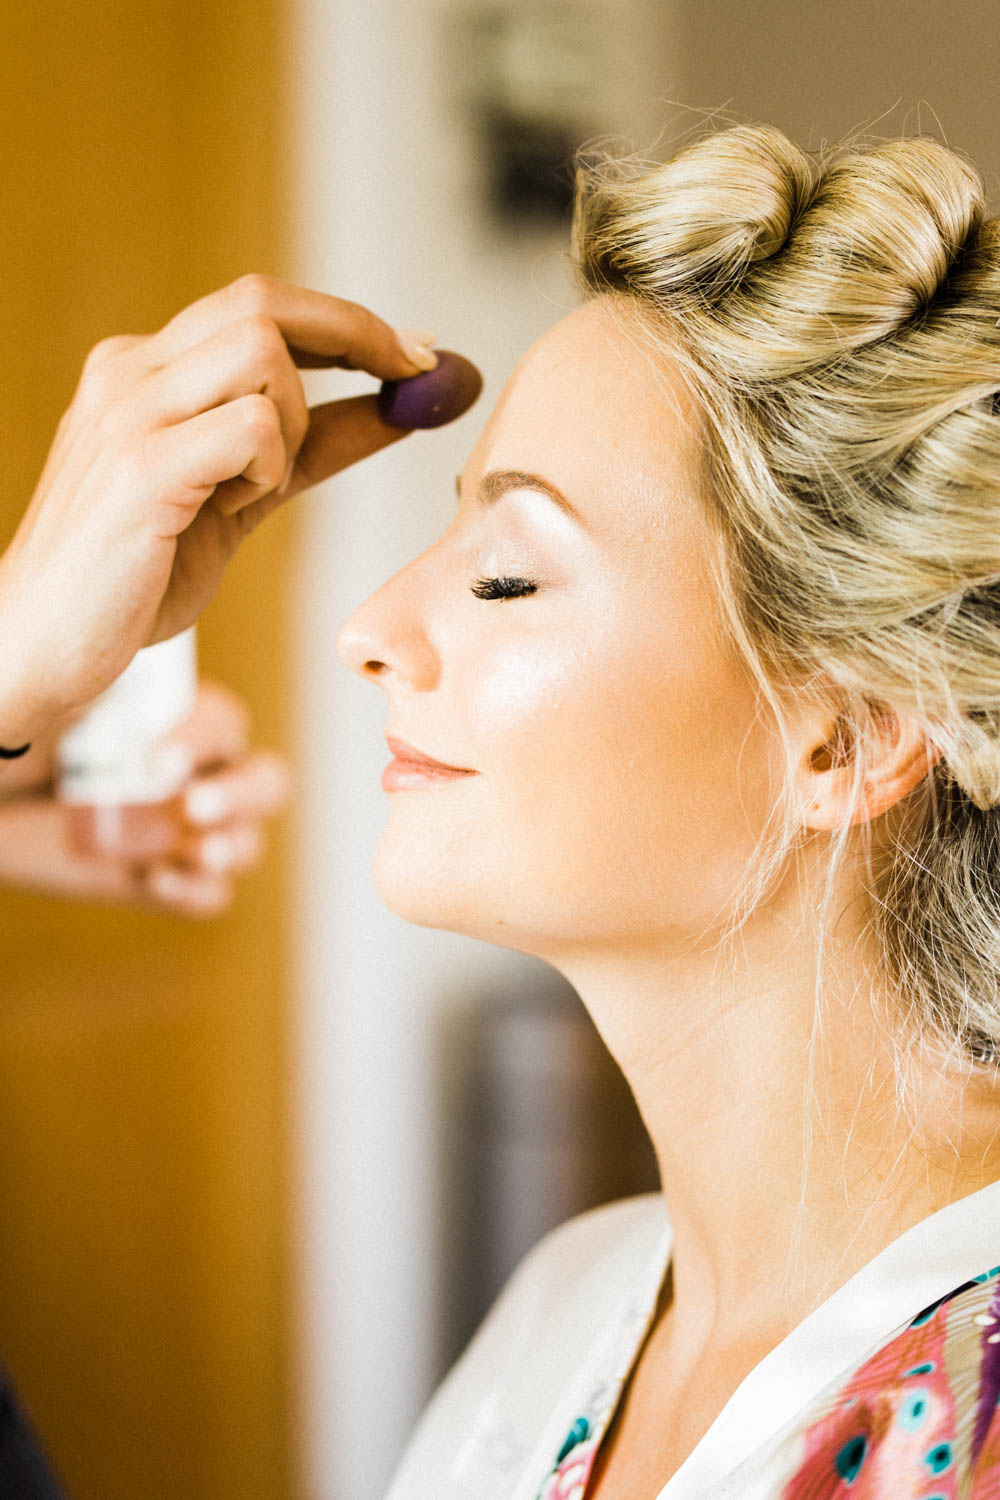 Special-Day-Photography-The-Manor-House-Hotel-Moreton-in-Marsh-Moreton-In-Marsh-Summer-Wedding-bridal-makeup-preparations.jpg